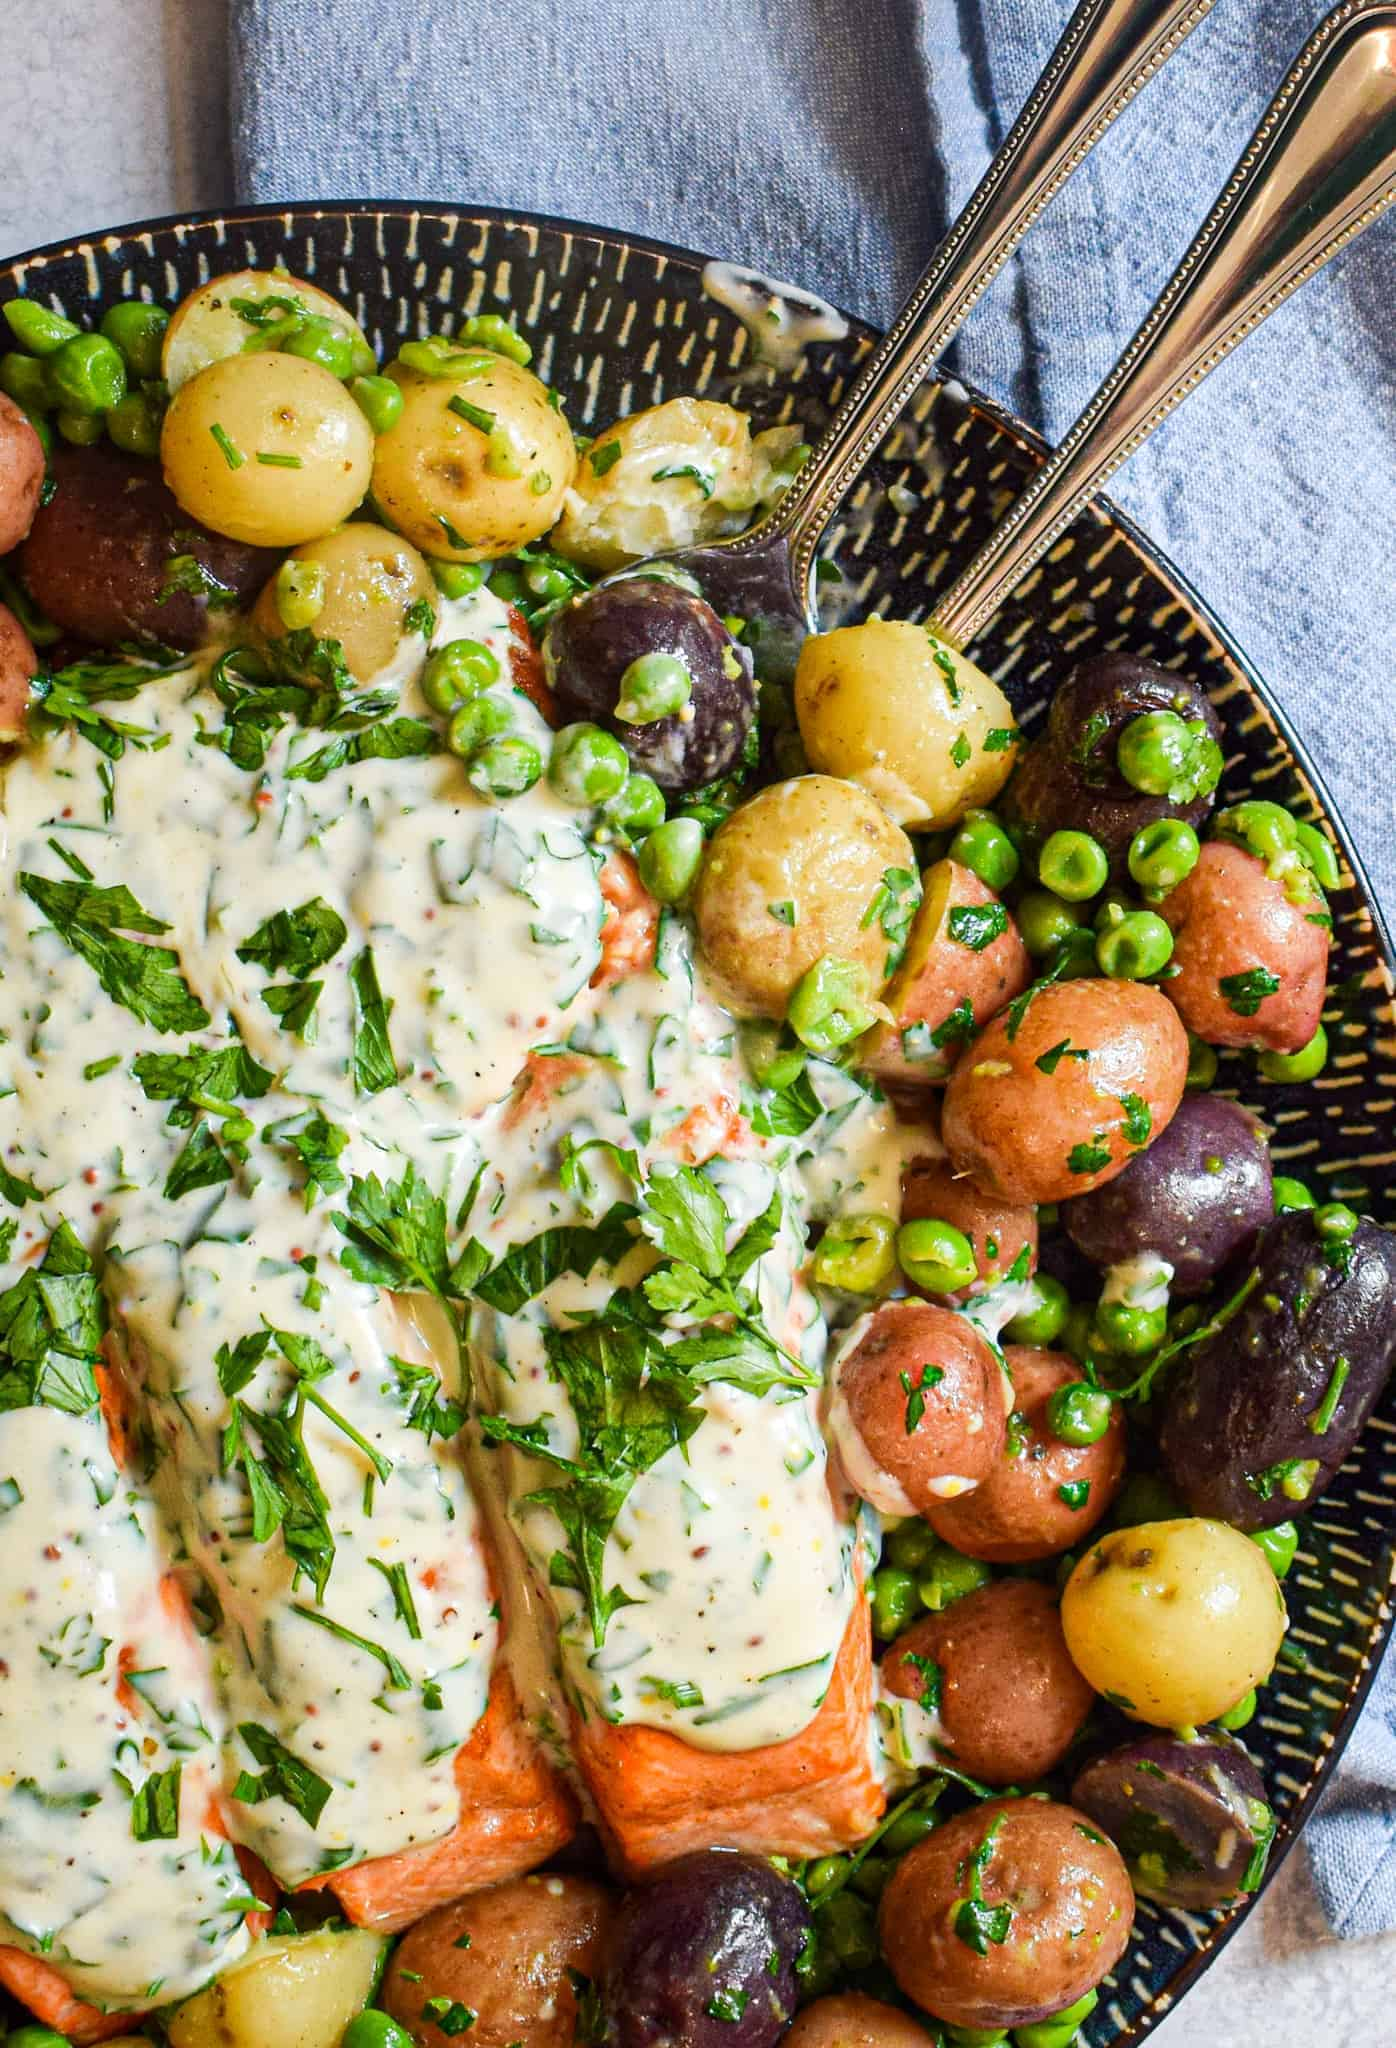 seared salmon with parsley sauce and steamed peas and potatoes